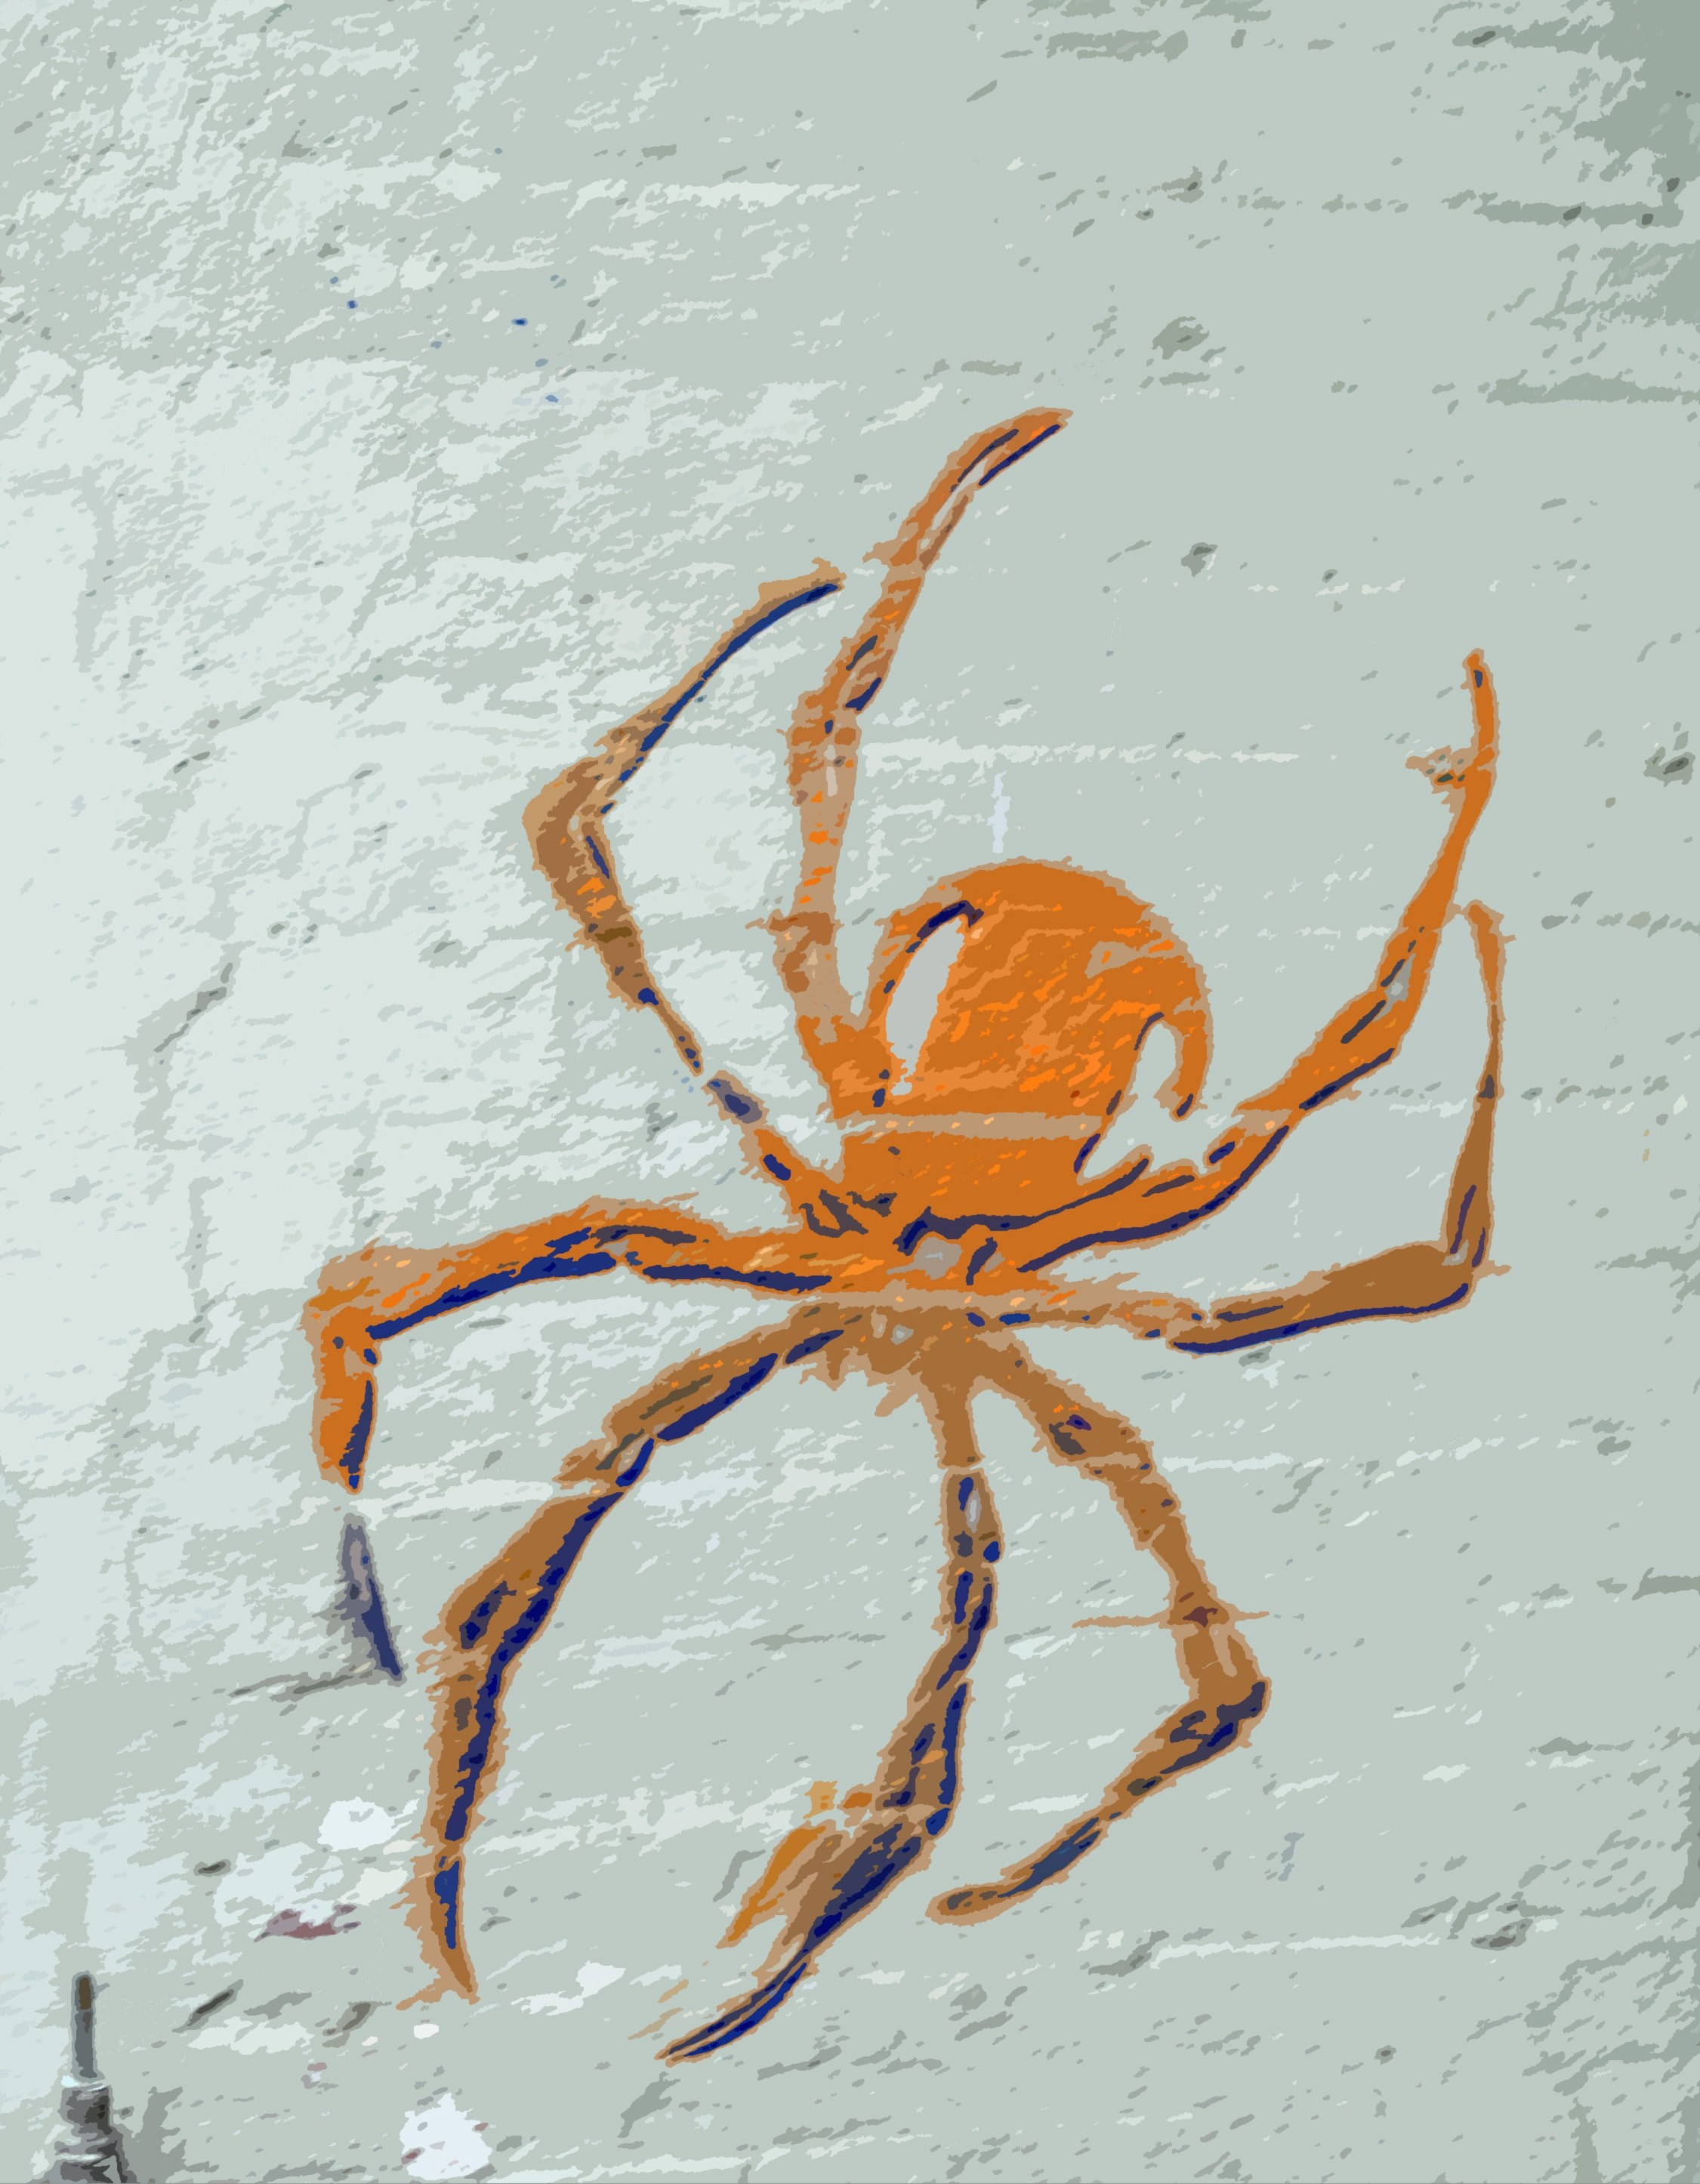 a spider symbol painted onto a wall